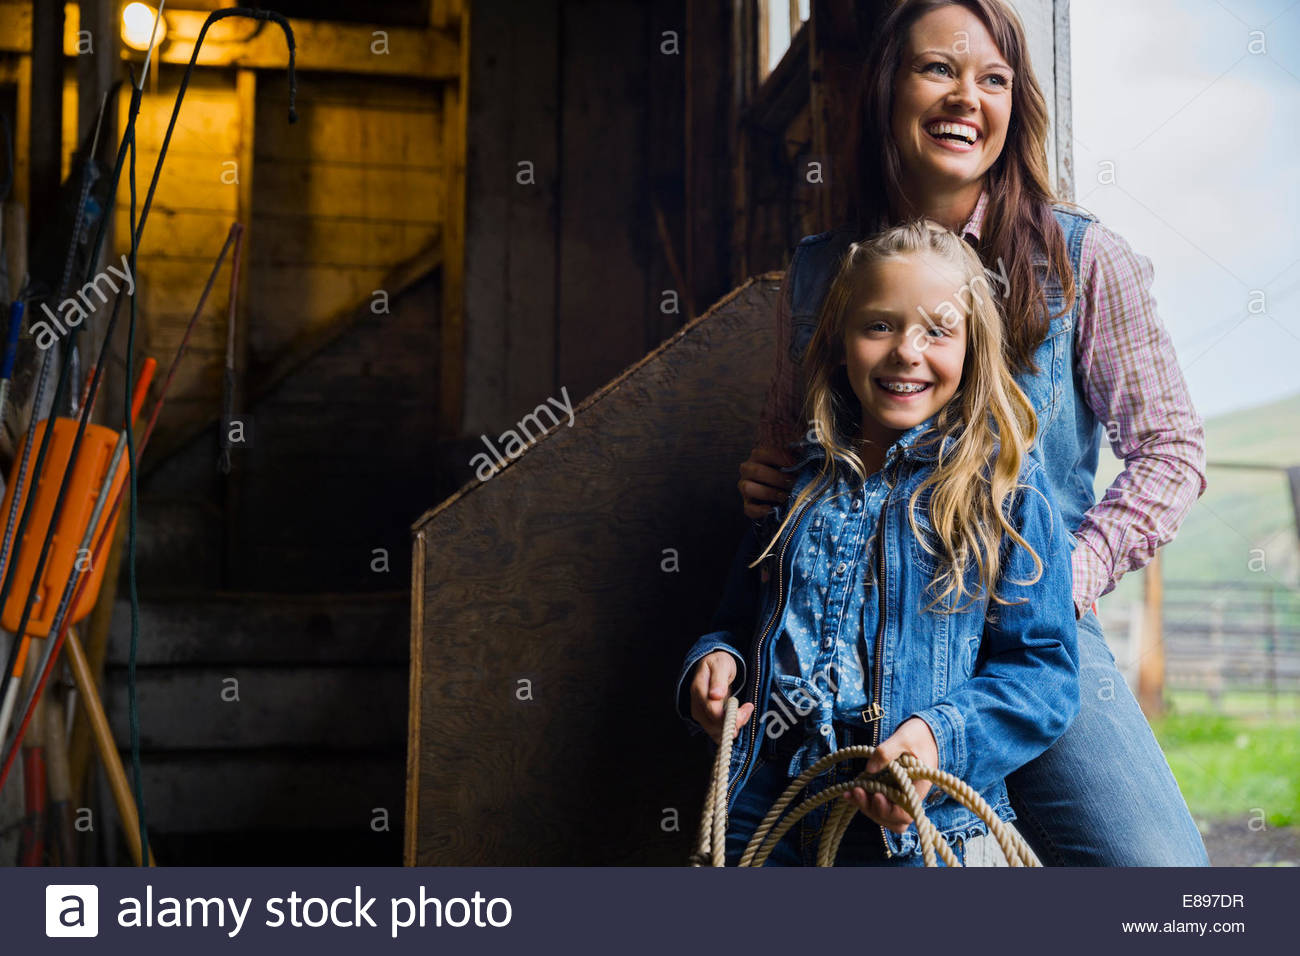 Mother and daughter laughing in barn doorway Stock Photo